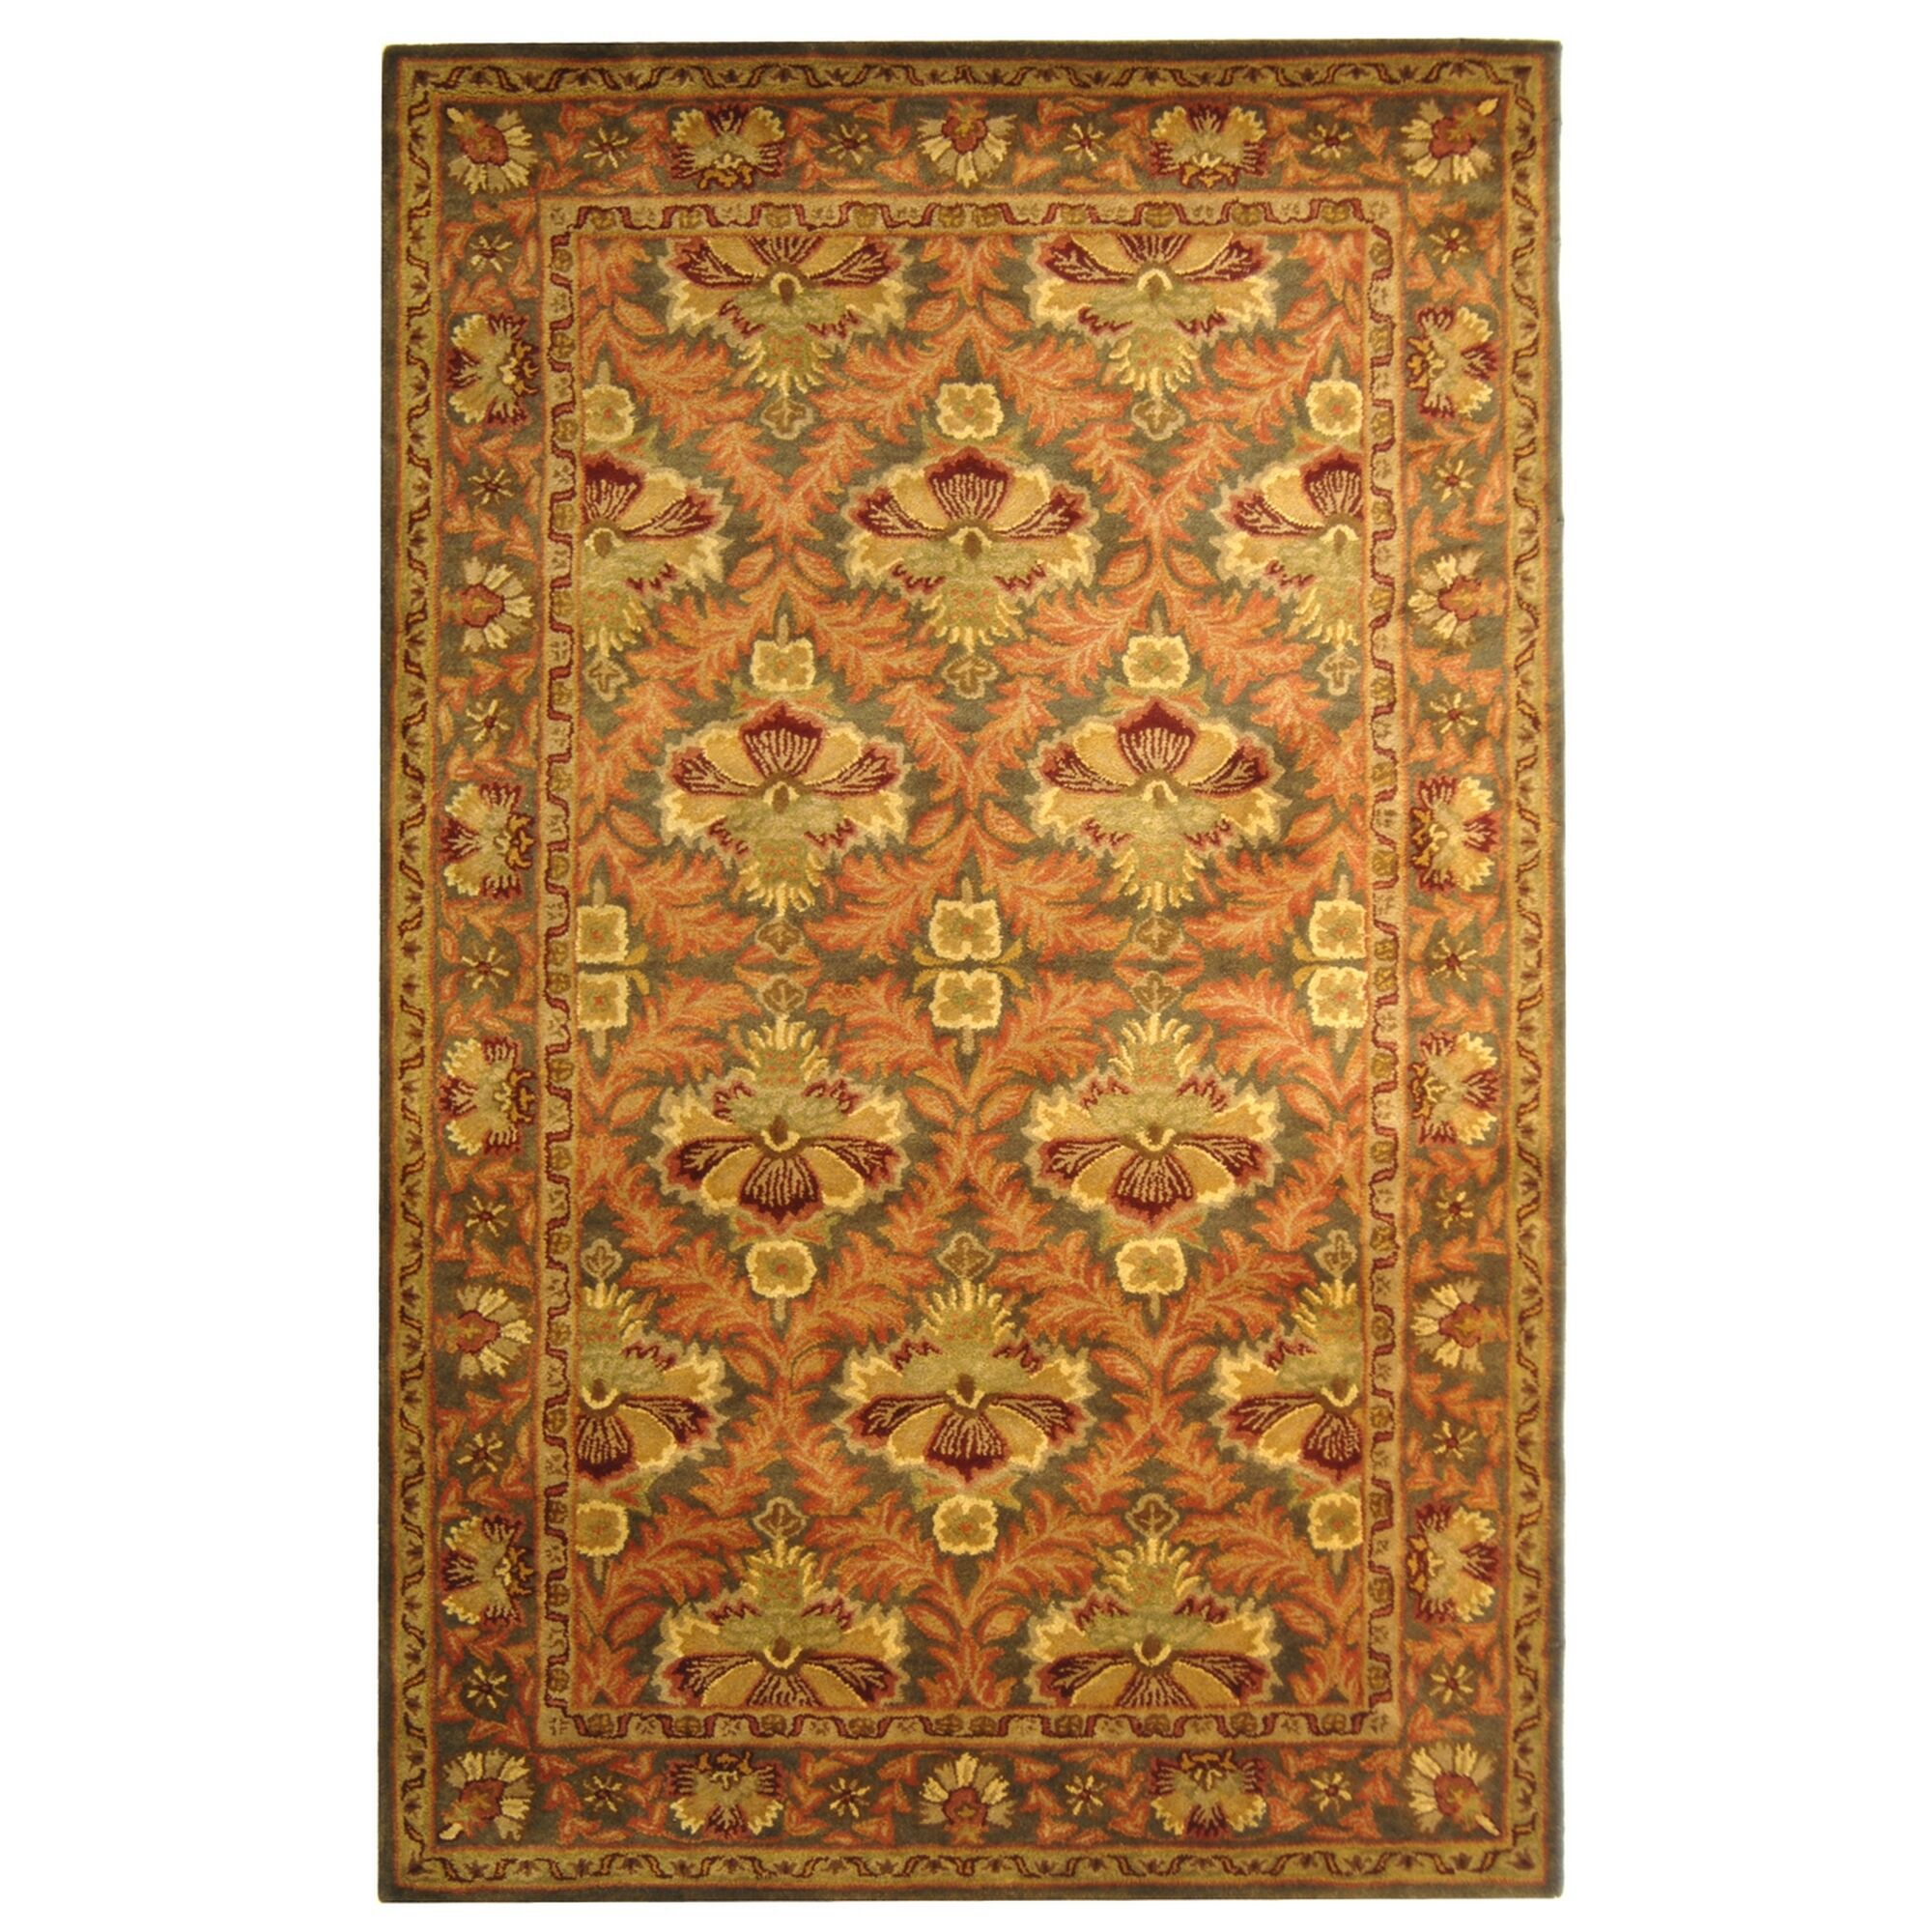 Dunbar Hand-Tufted/Hand-Hooked Wool Sage/Gold Area Rug Rug Size: Rectangle 6' x 9'